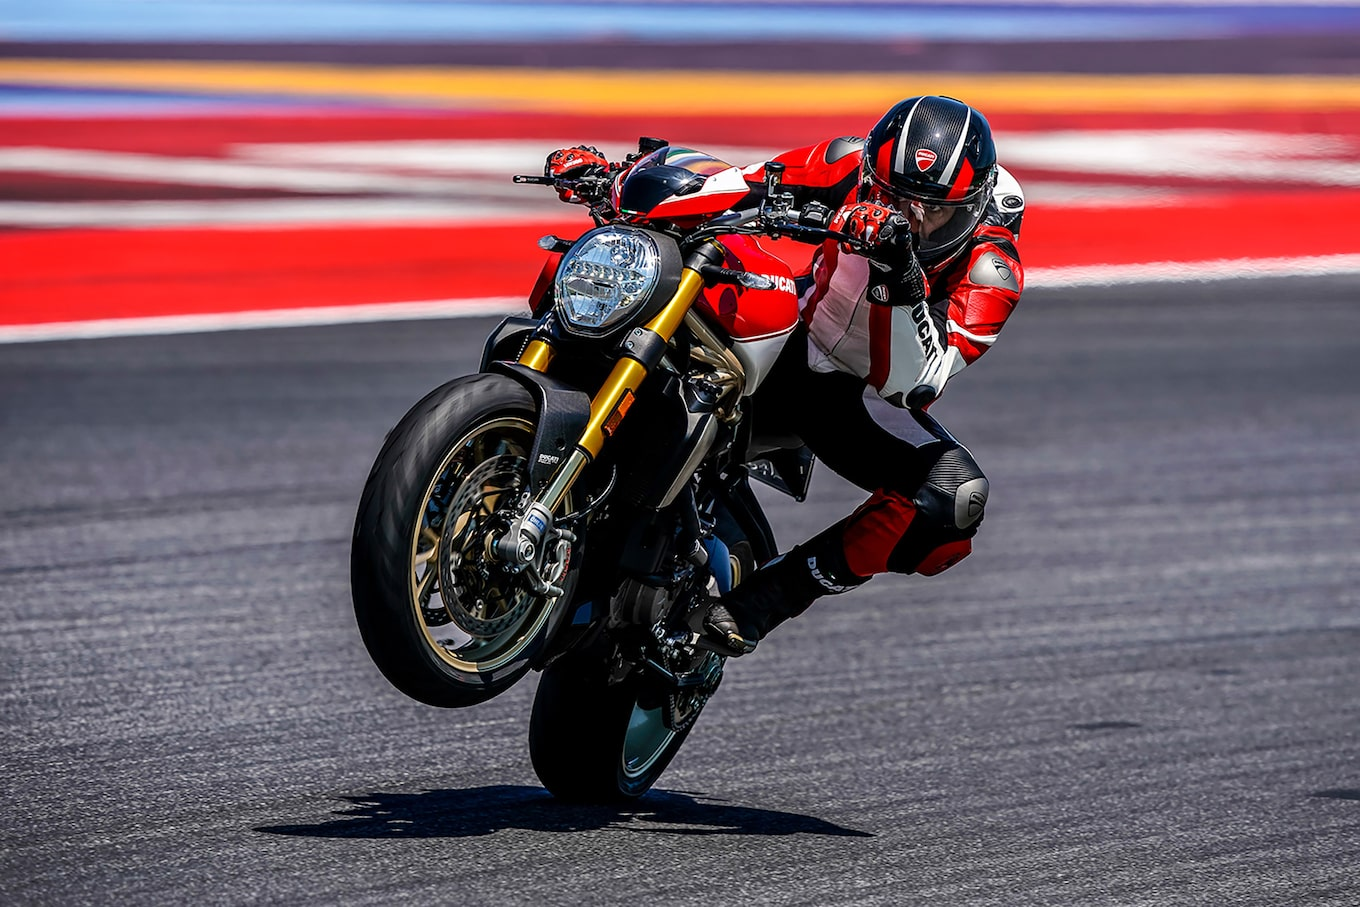 alex-farinelli-sony-alpha-9-motorcyclist-pops-a-wheelie-on-race-track